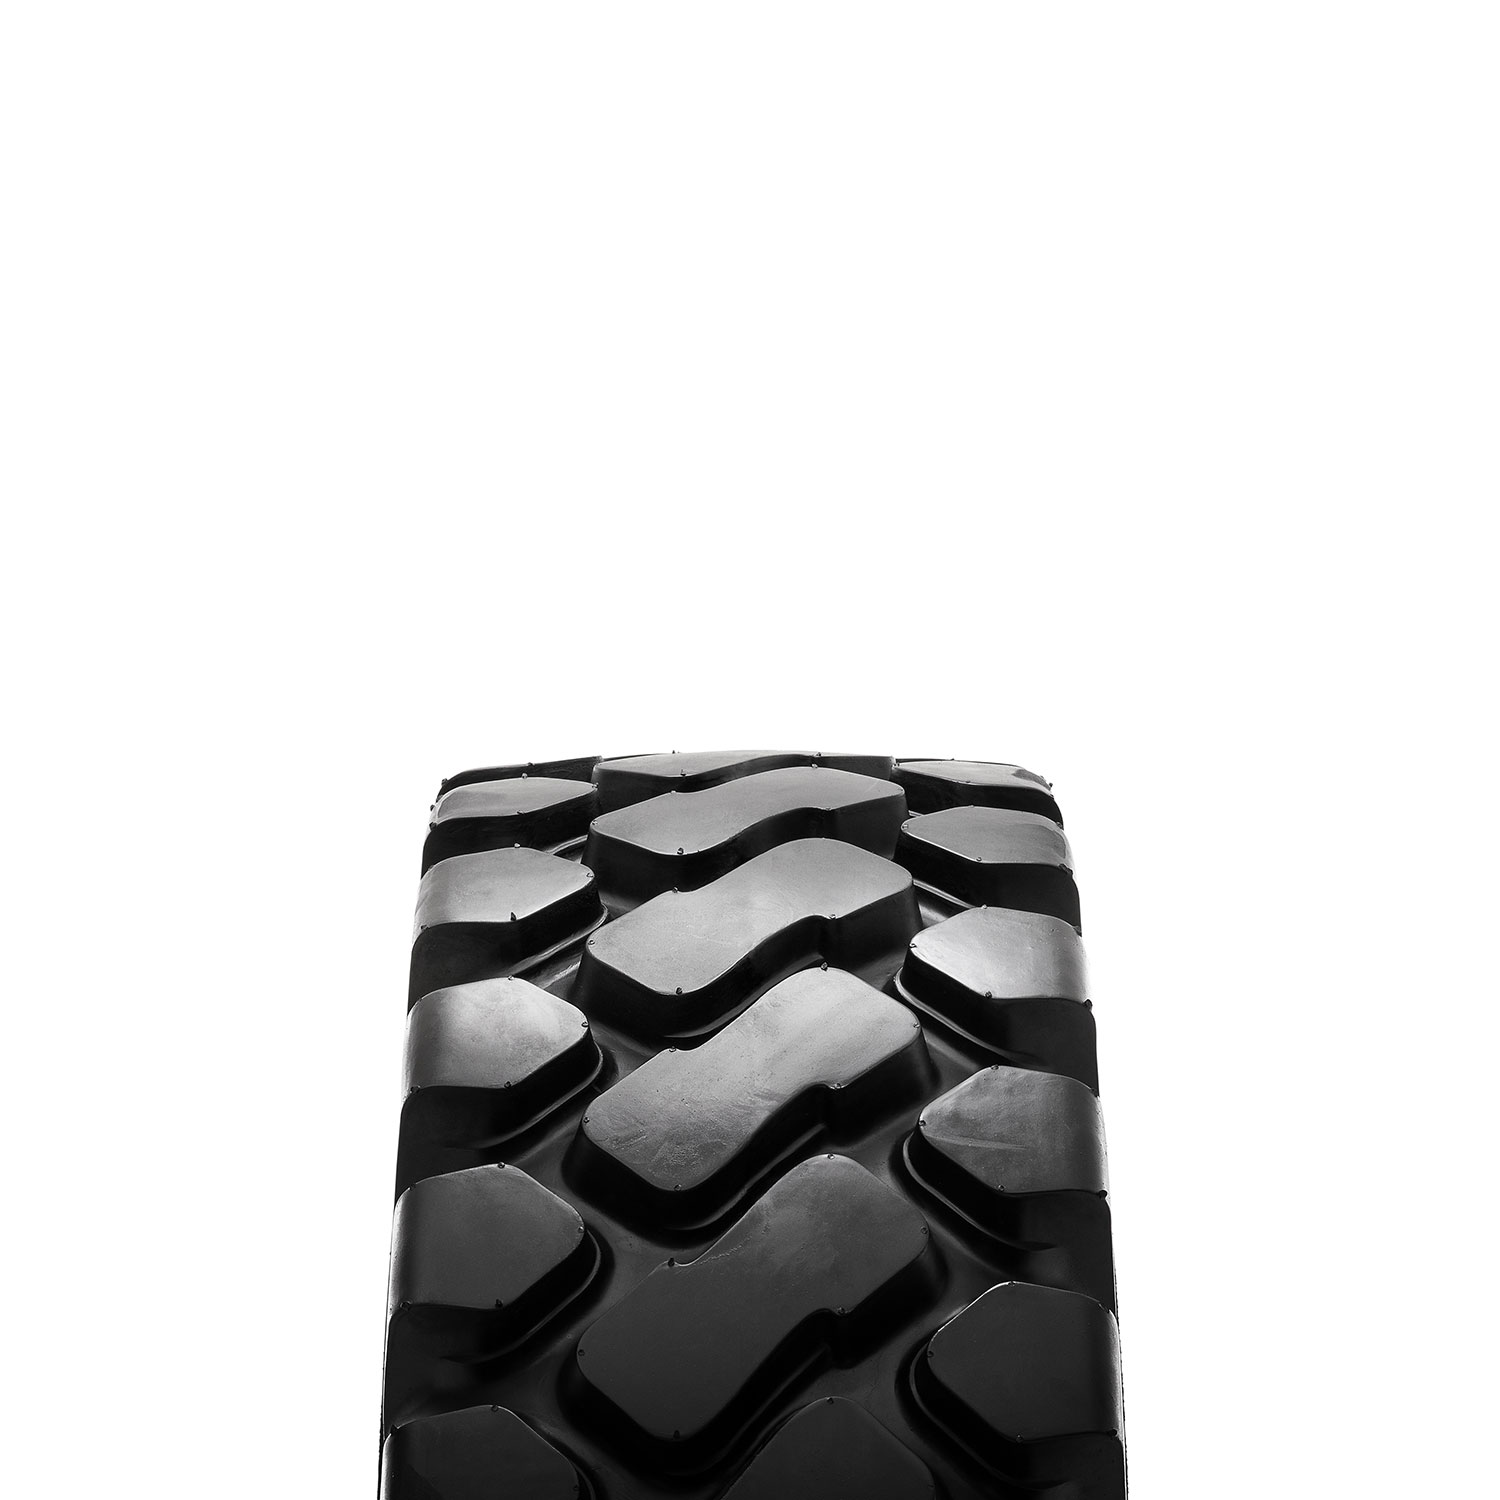 Gomme Nuove OTR-OUTRIGGER 445 / 65 - 22.5 R0 18PR STANDARD PAINTED OUT pneumatici nuovi Estivo